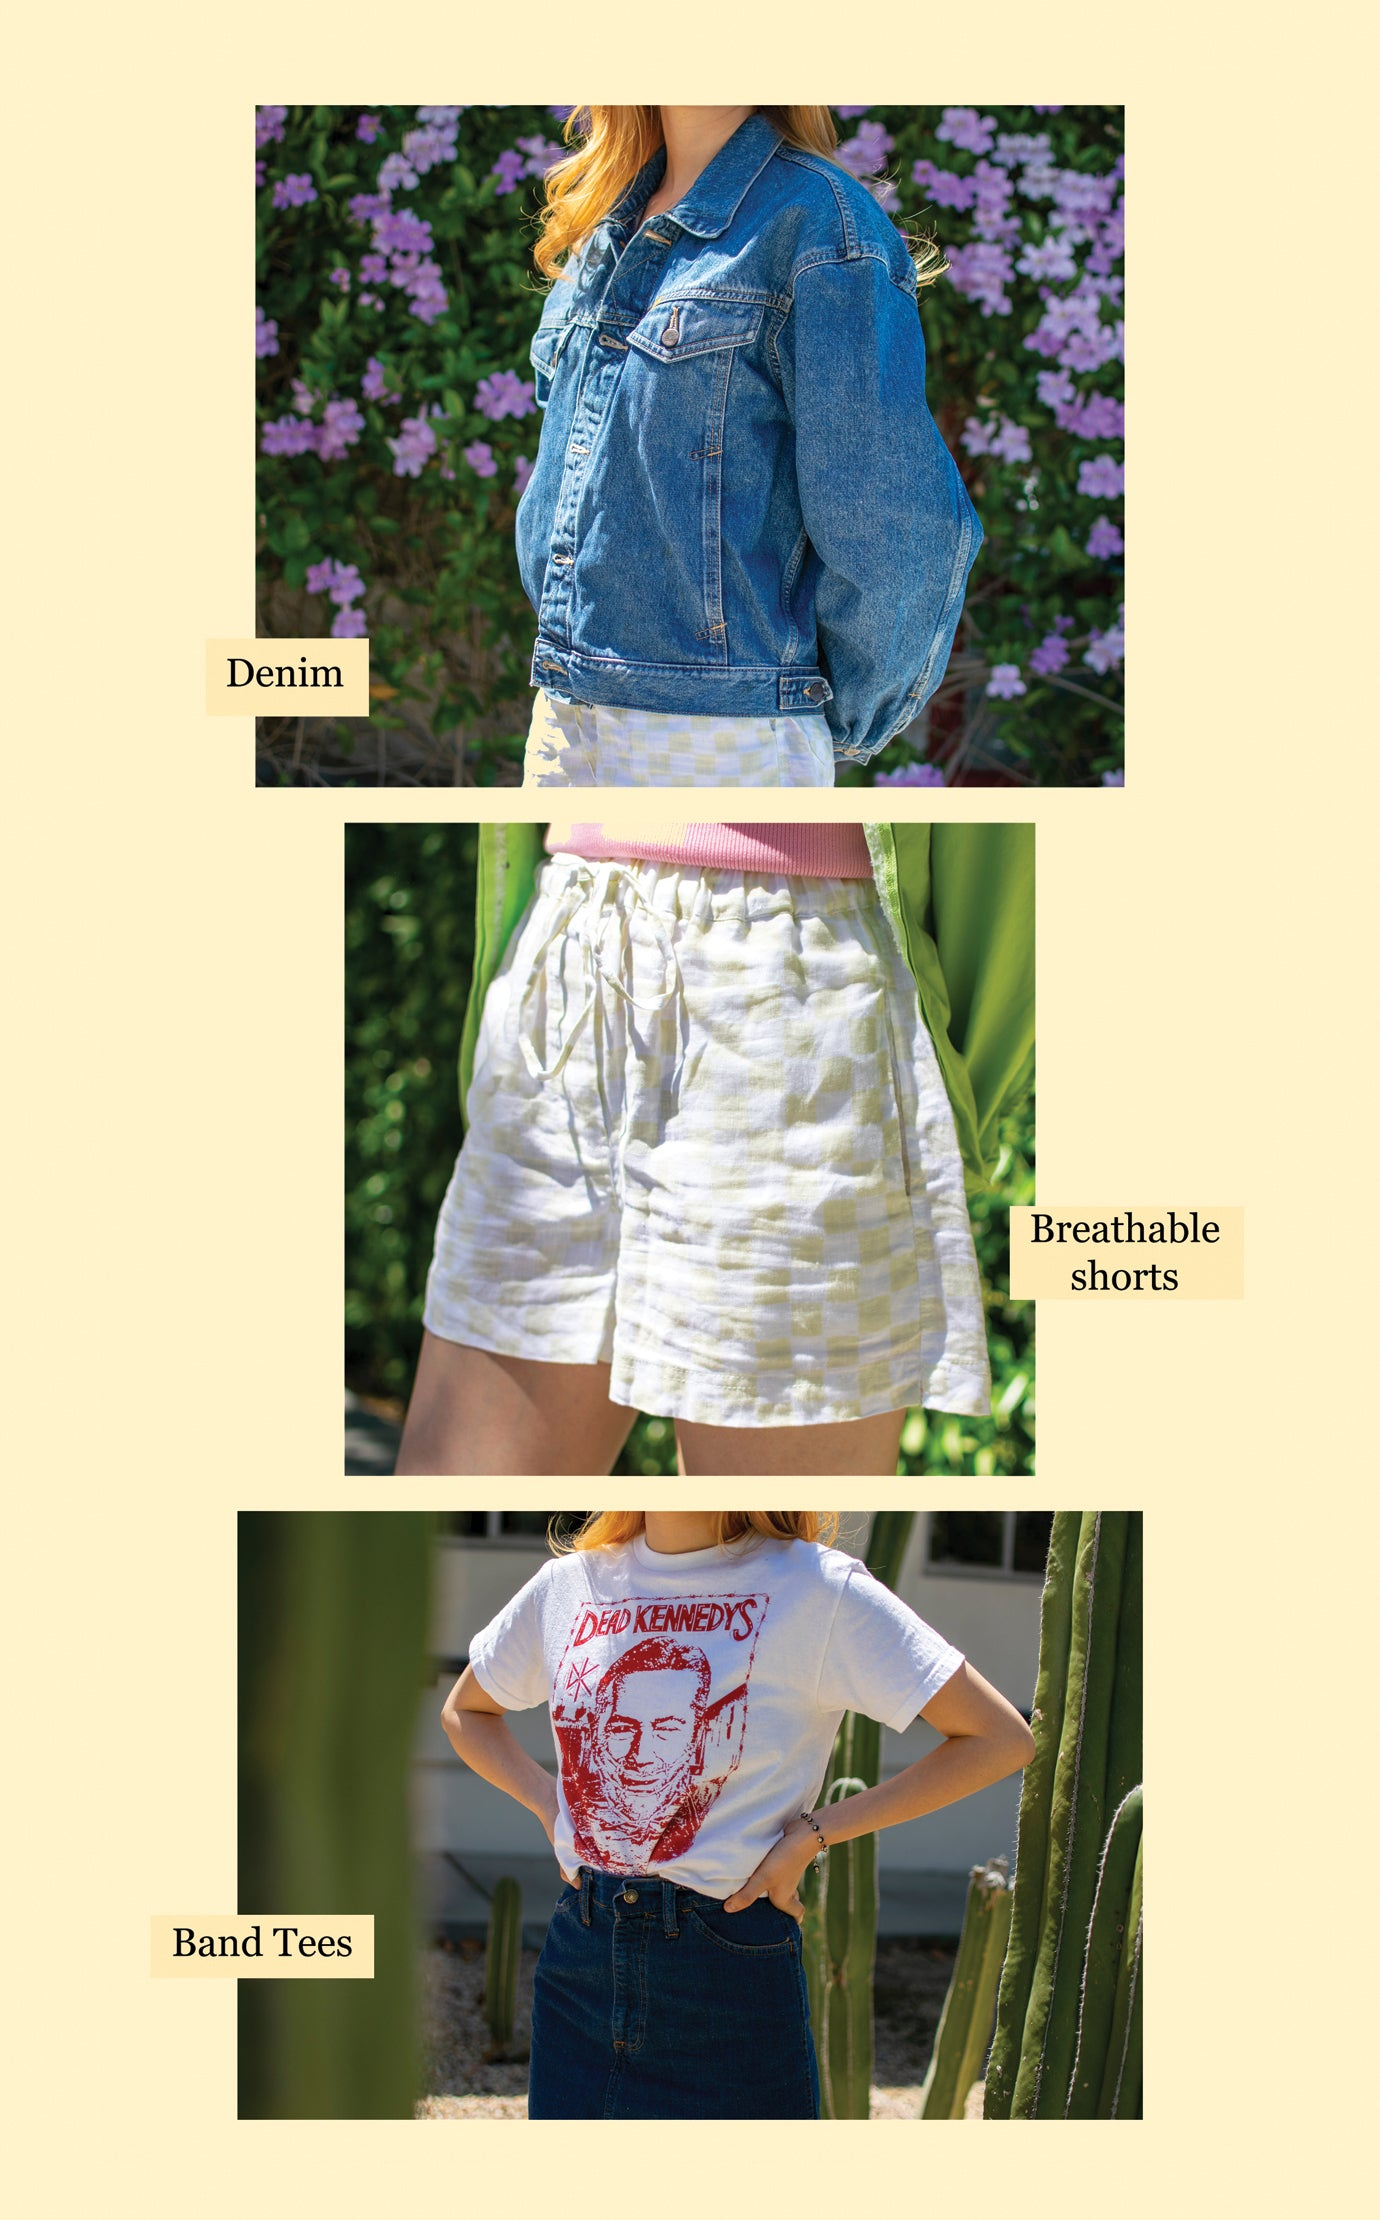 Denim, breathable shorts, band tees. Babydoll/tiered dresses, high waisted pants